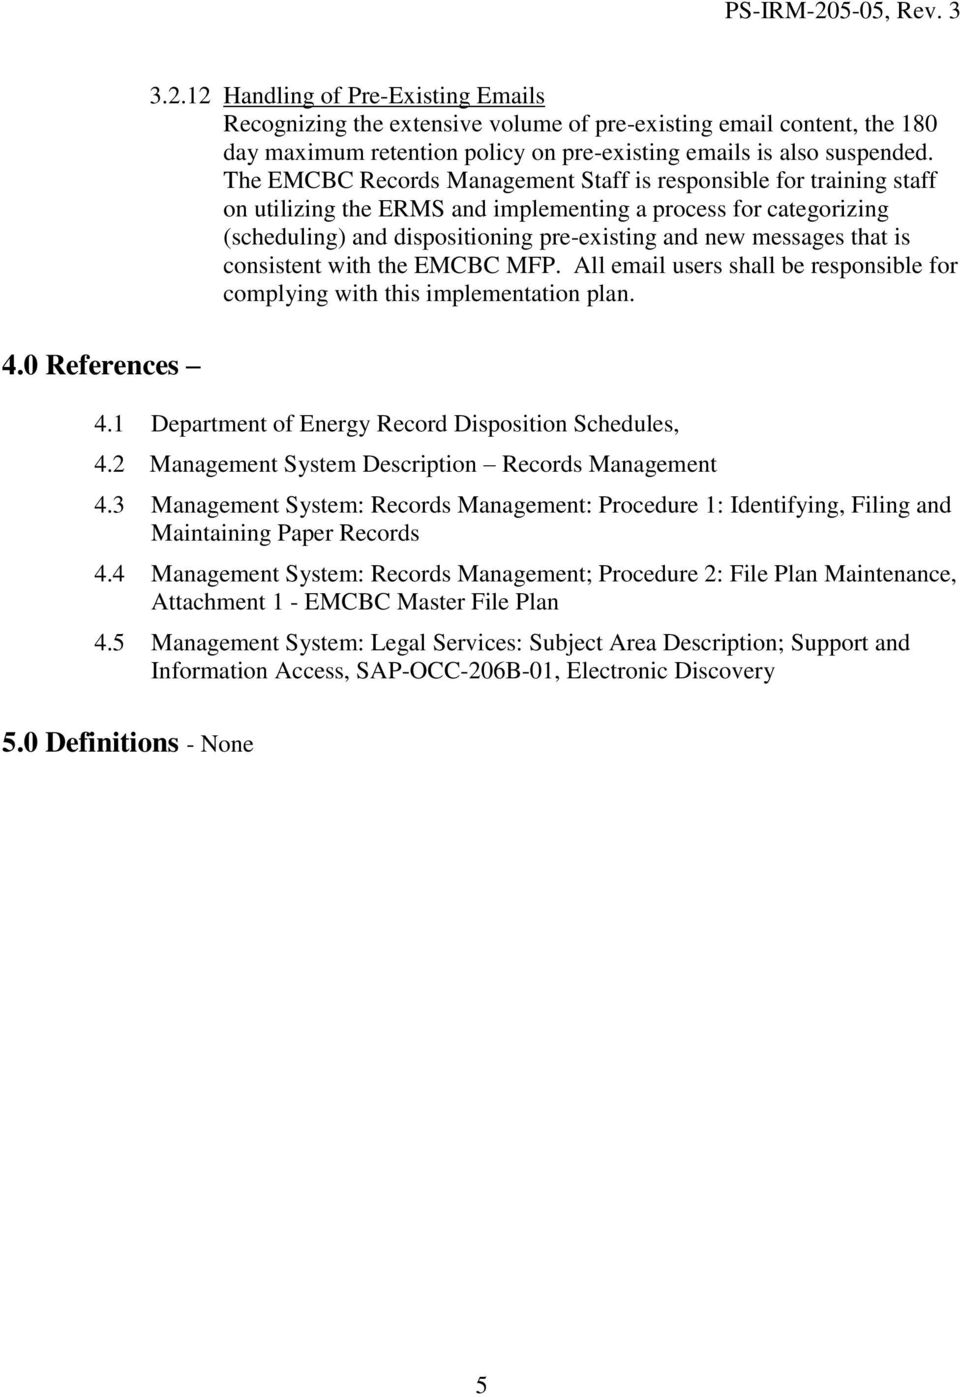 that is consistent with the EMCBC MFP. All email users shall be responsible for complying with this implementation plan. 4.0 References 4.1 Department of Energy Record Disposition Schedules, 4.